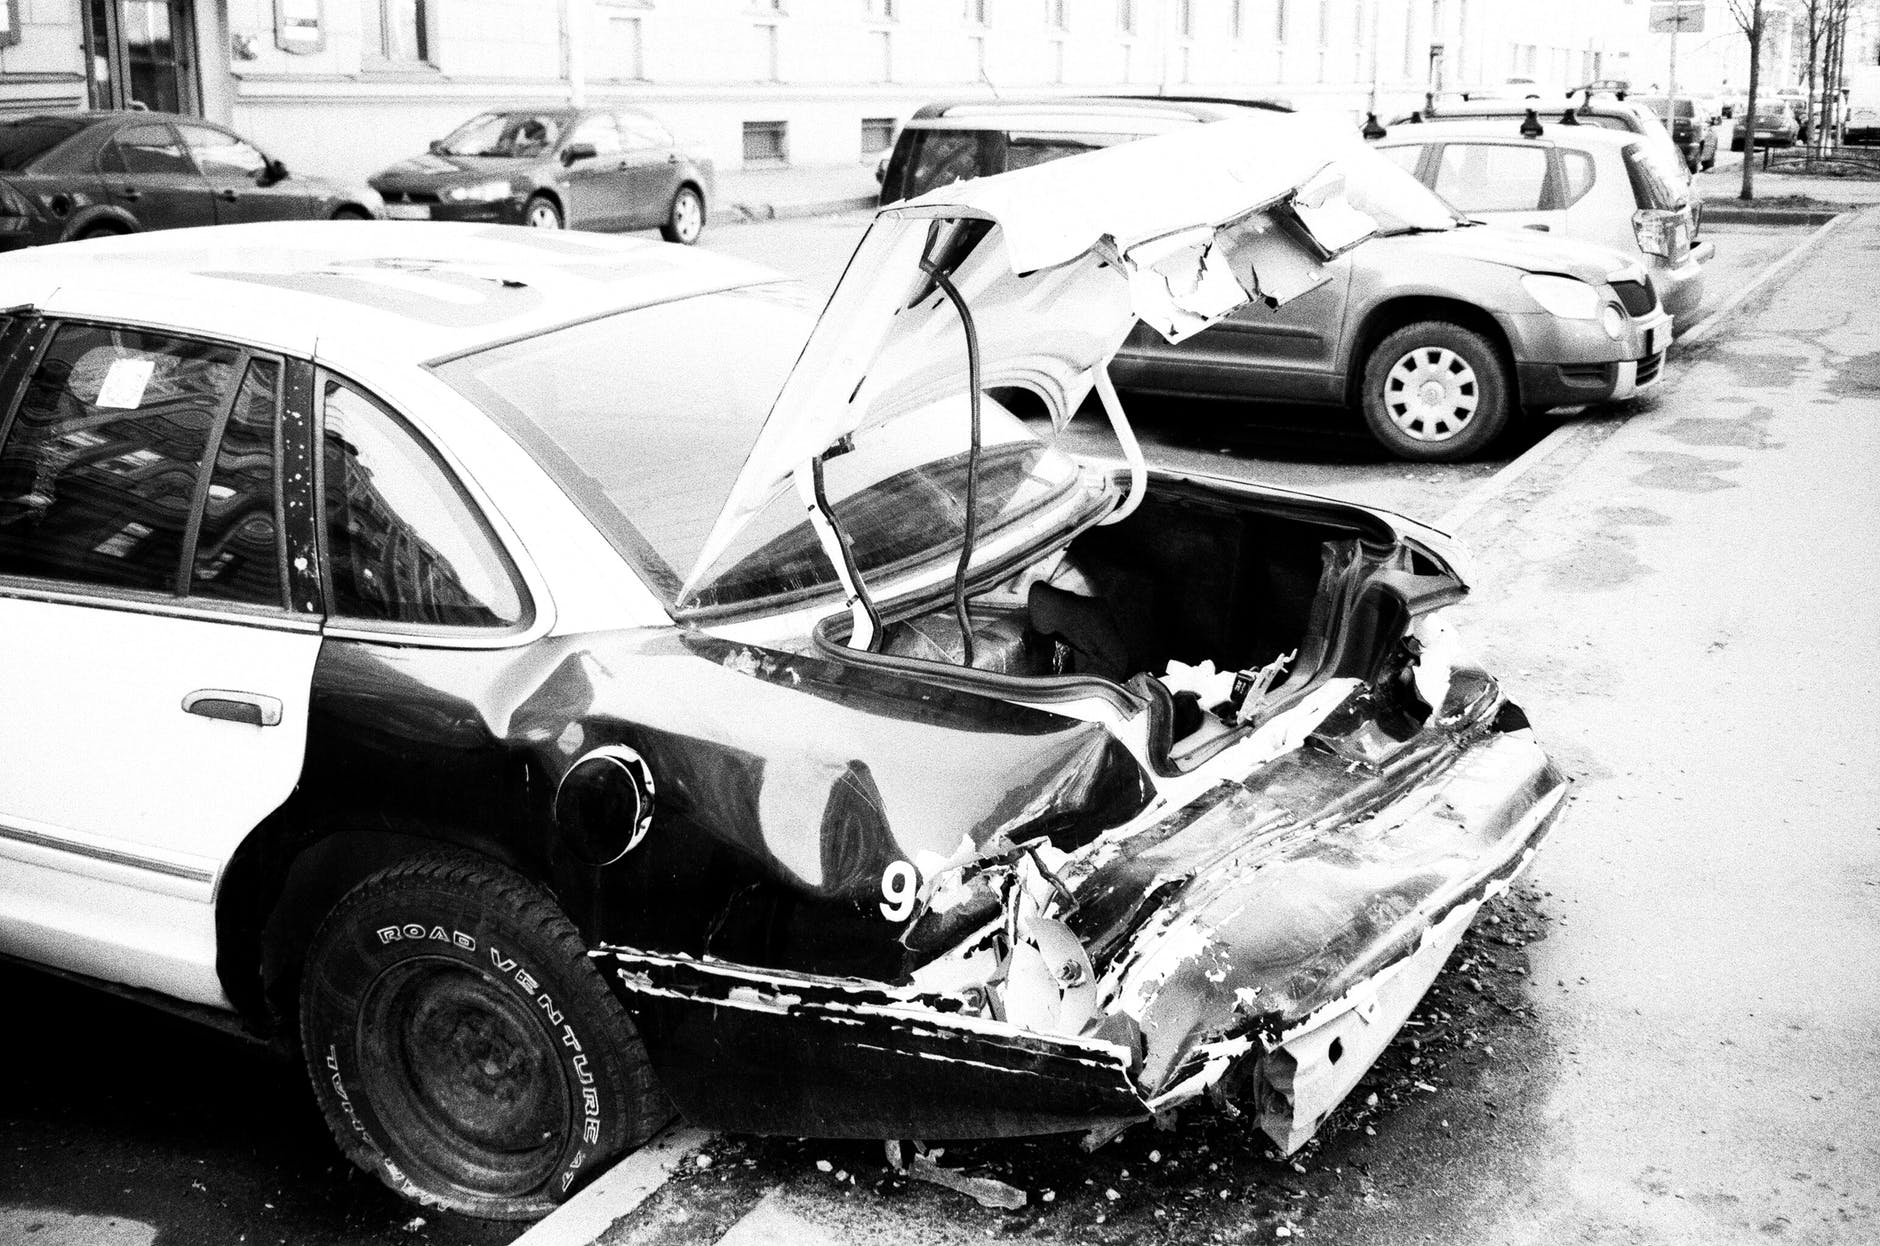 grayscale photo of wrecked car parked outside